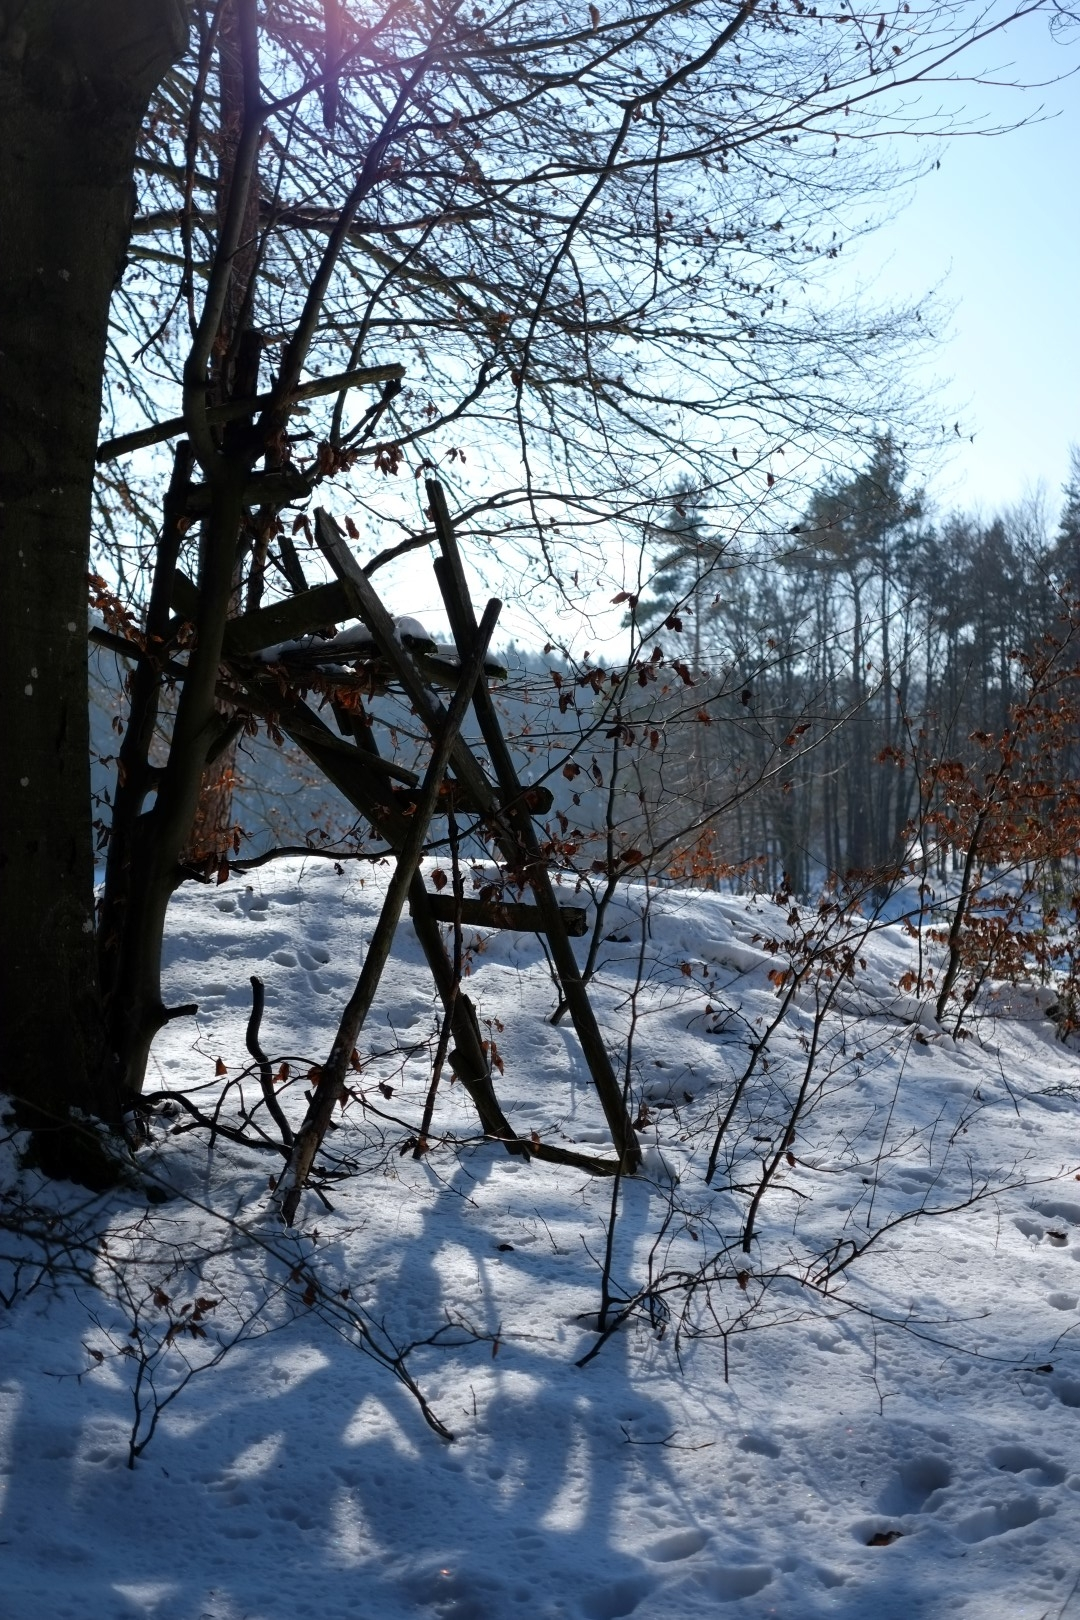 08_Hegendorf_Feb_2015